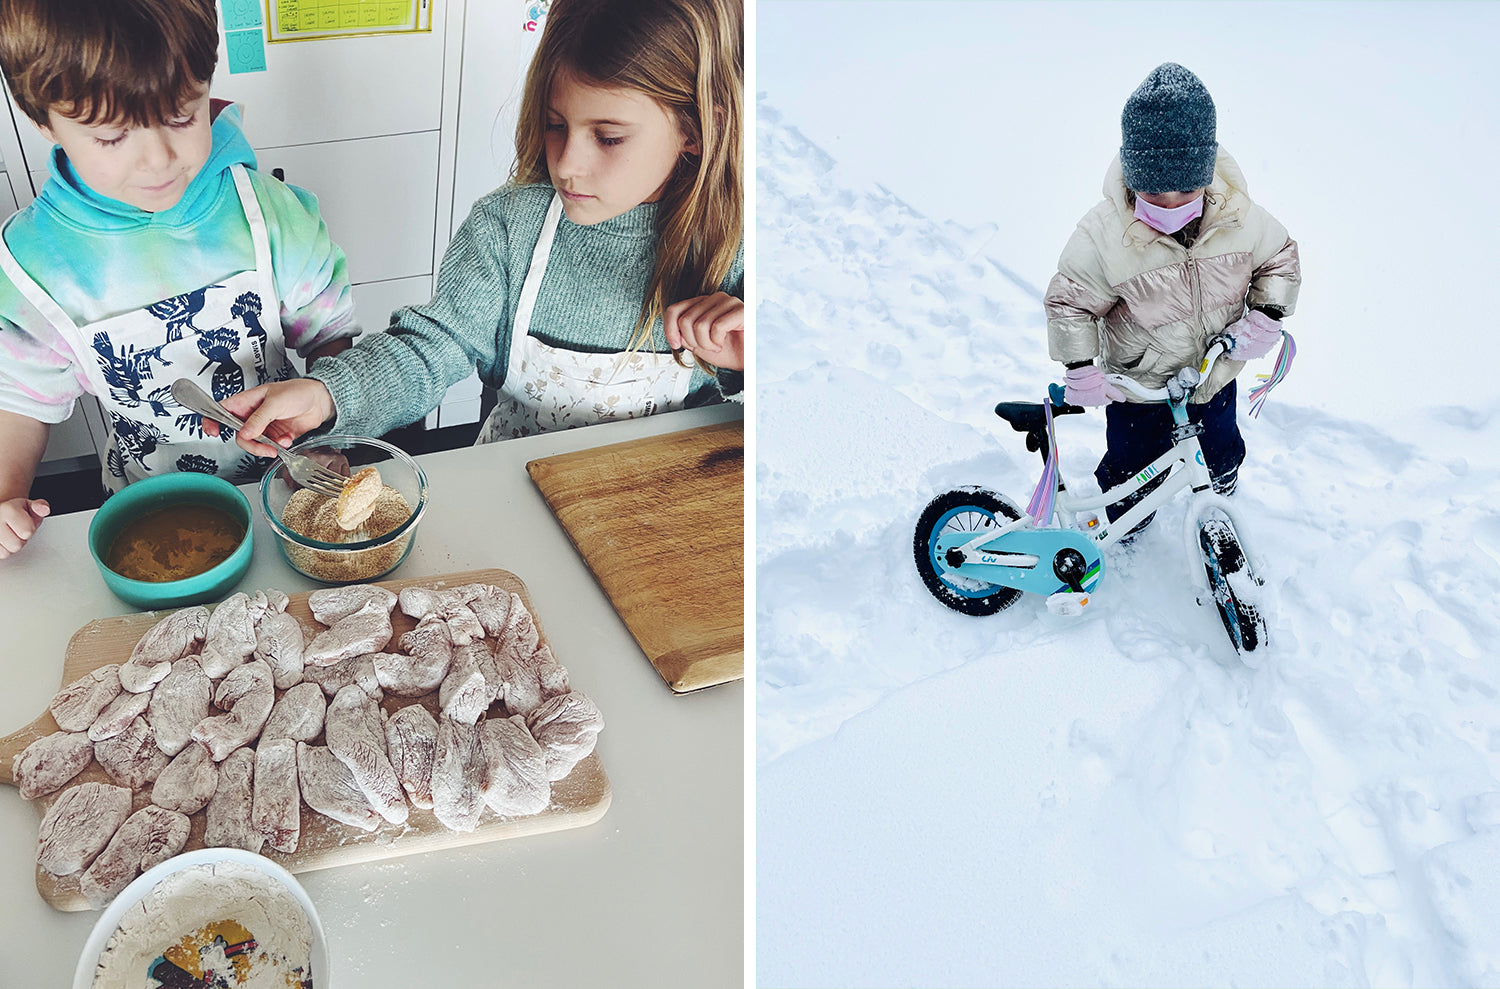 Side by side images of our families this week. Two kids making dinner, and one on bike playing in the snow.